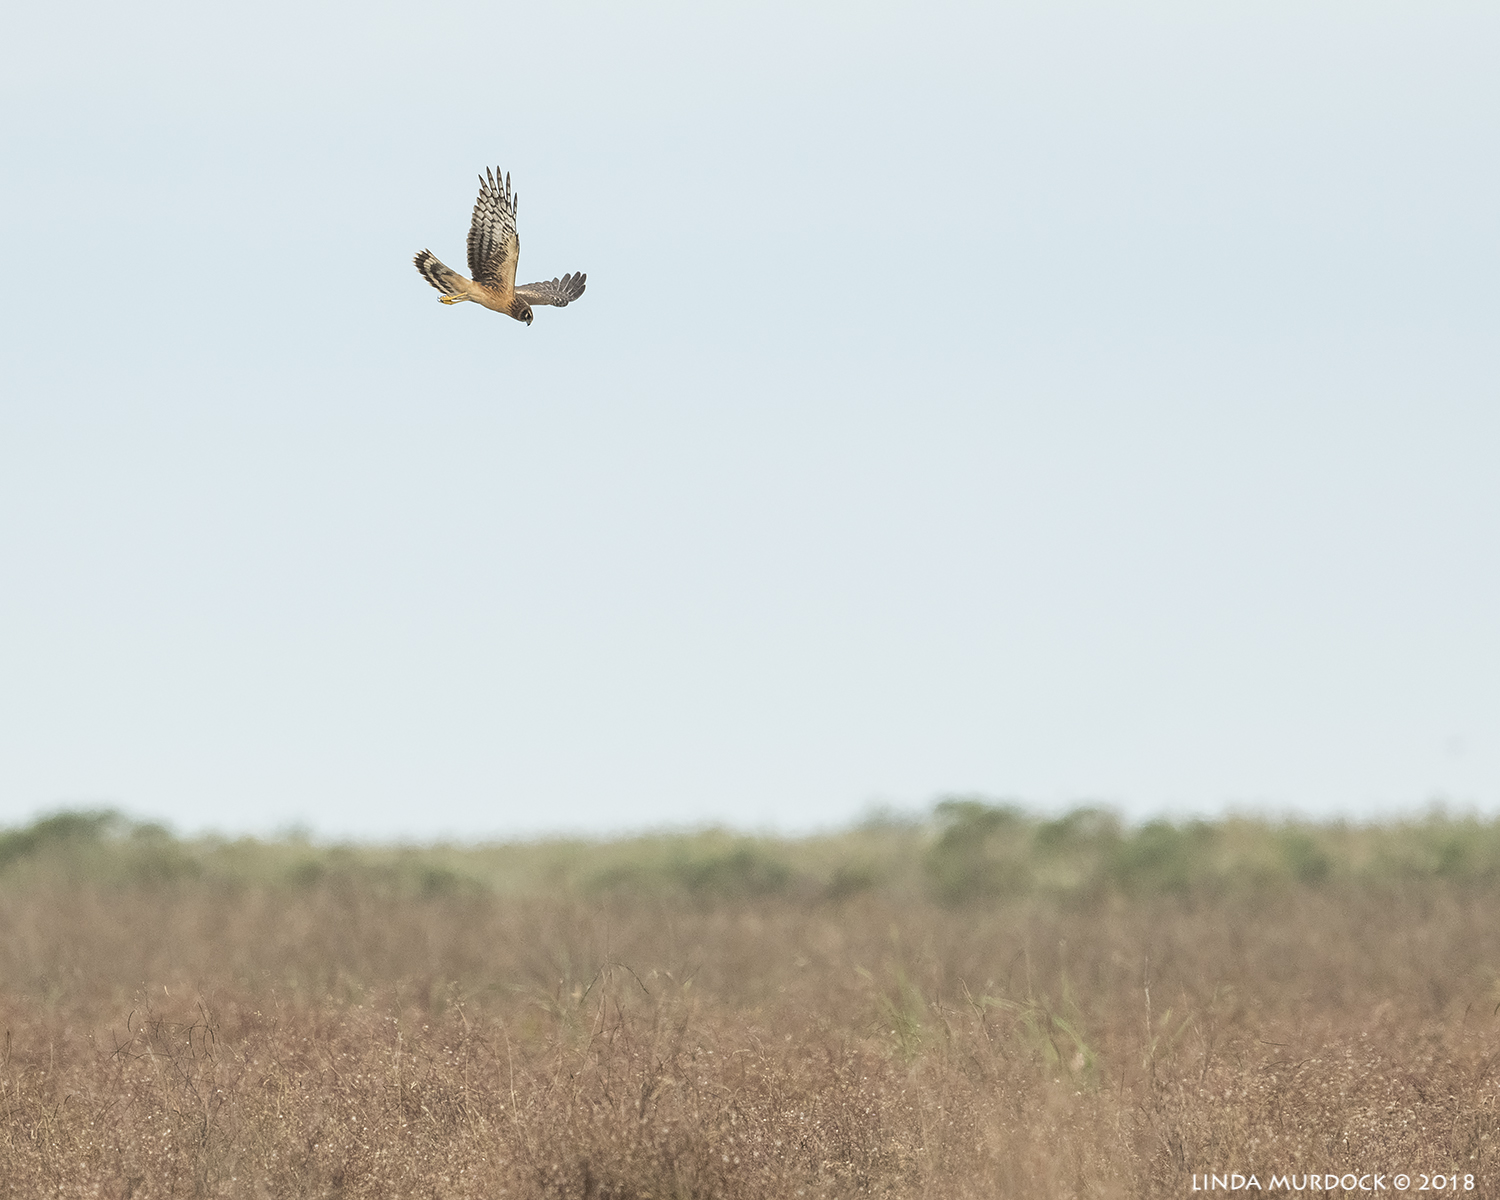 Another female Harrier  Nikon D850 with NIKKOR 500mm f/4E VR with Nikon 1.4x TC ~ 1/2500 sec f/6.3 ISO 1250; hand-held